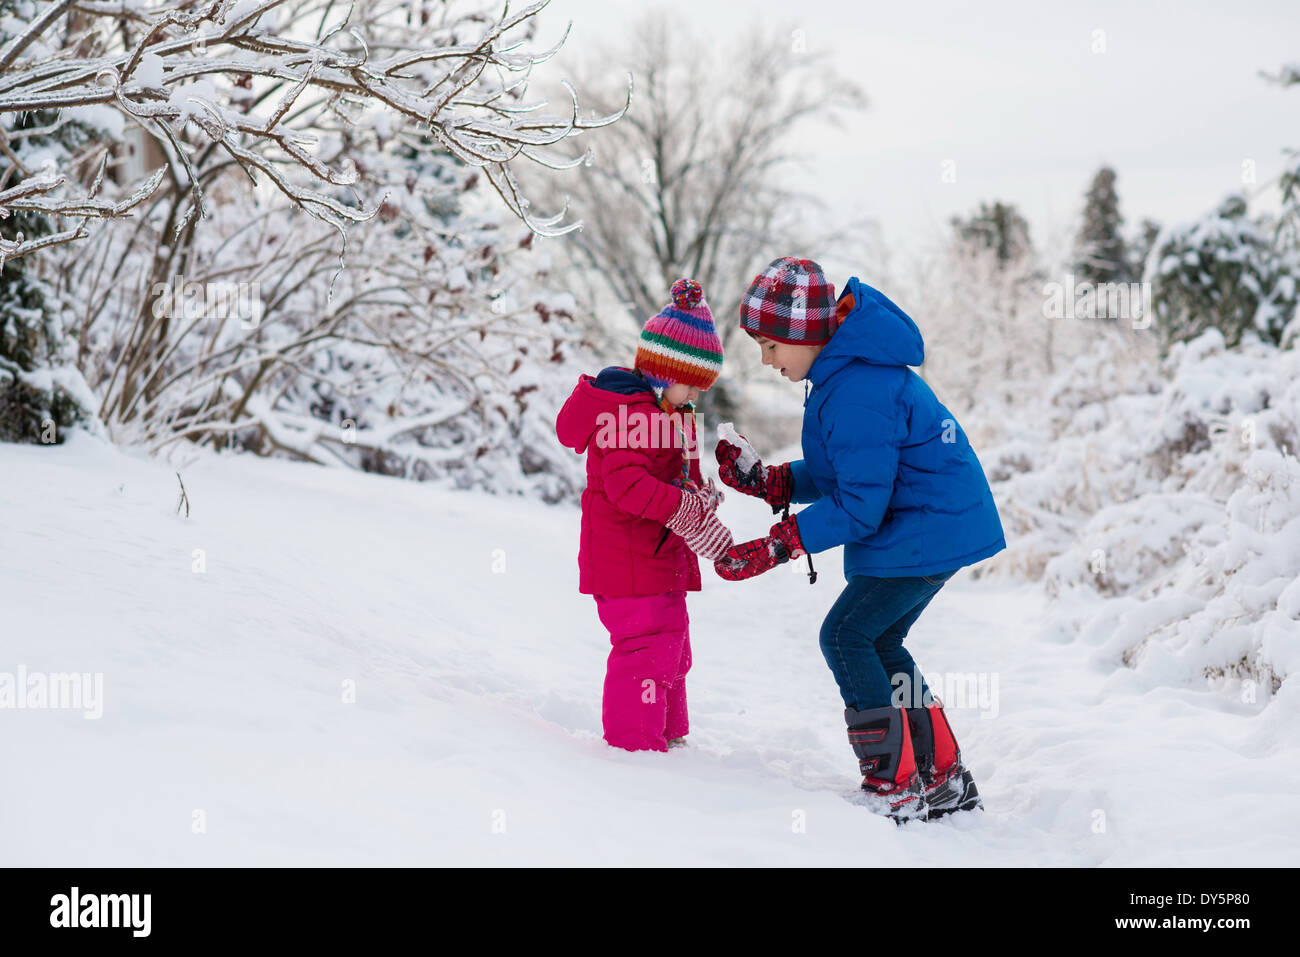 Brother showing icicles to sister whilst out in snow - Stock Image